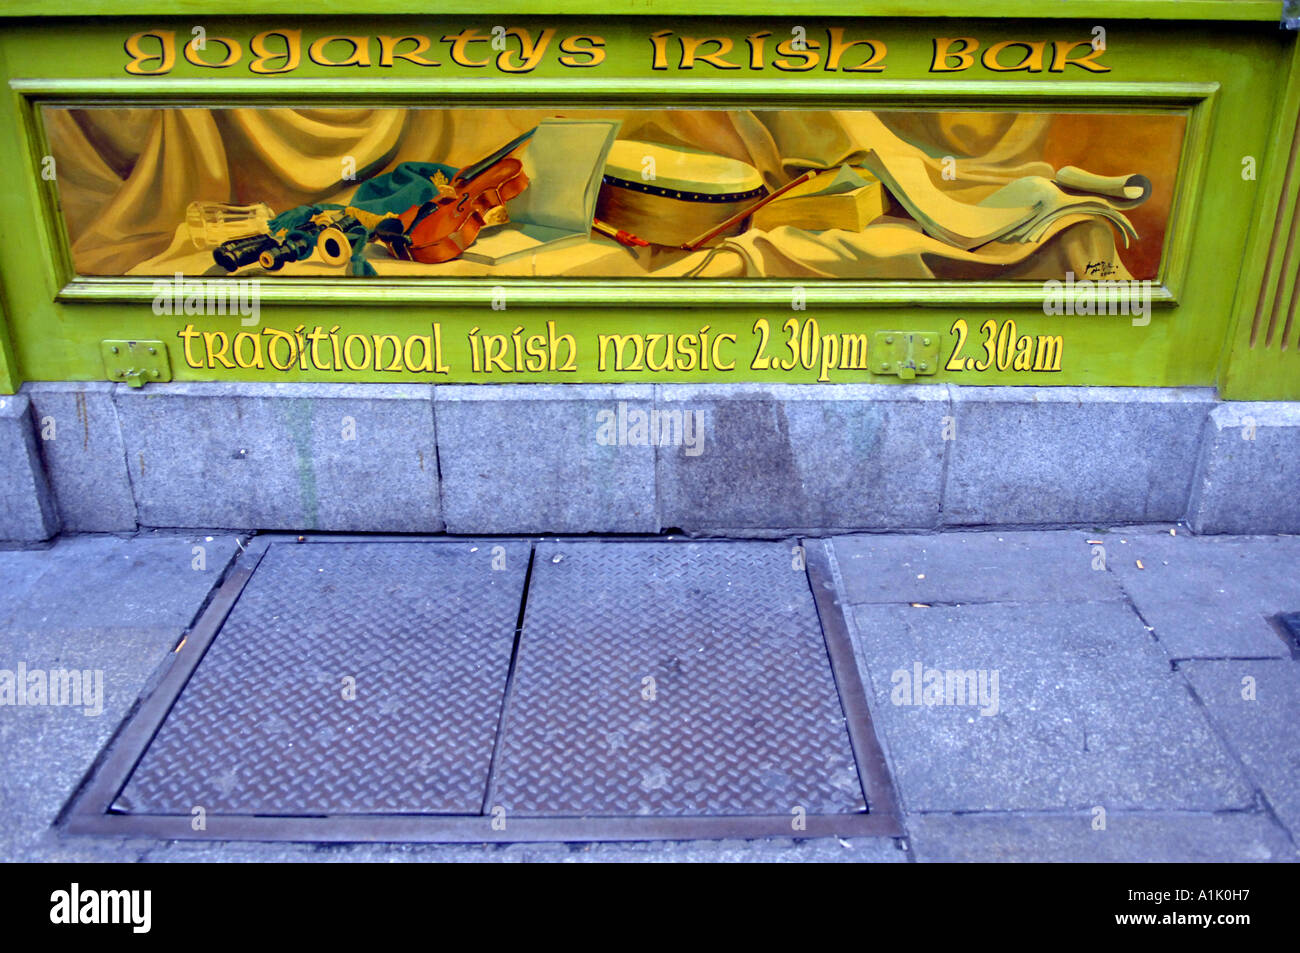 temple bar drinking pubs public house entertainemnt lesiure area district outside tourist history heritage culture ireland dubli - Stock Image